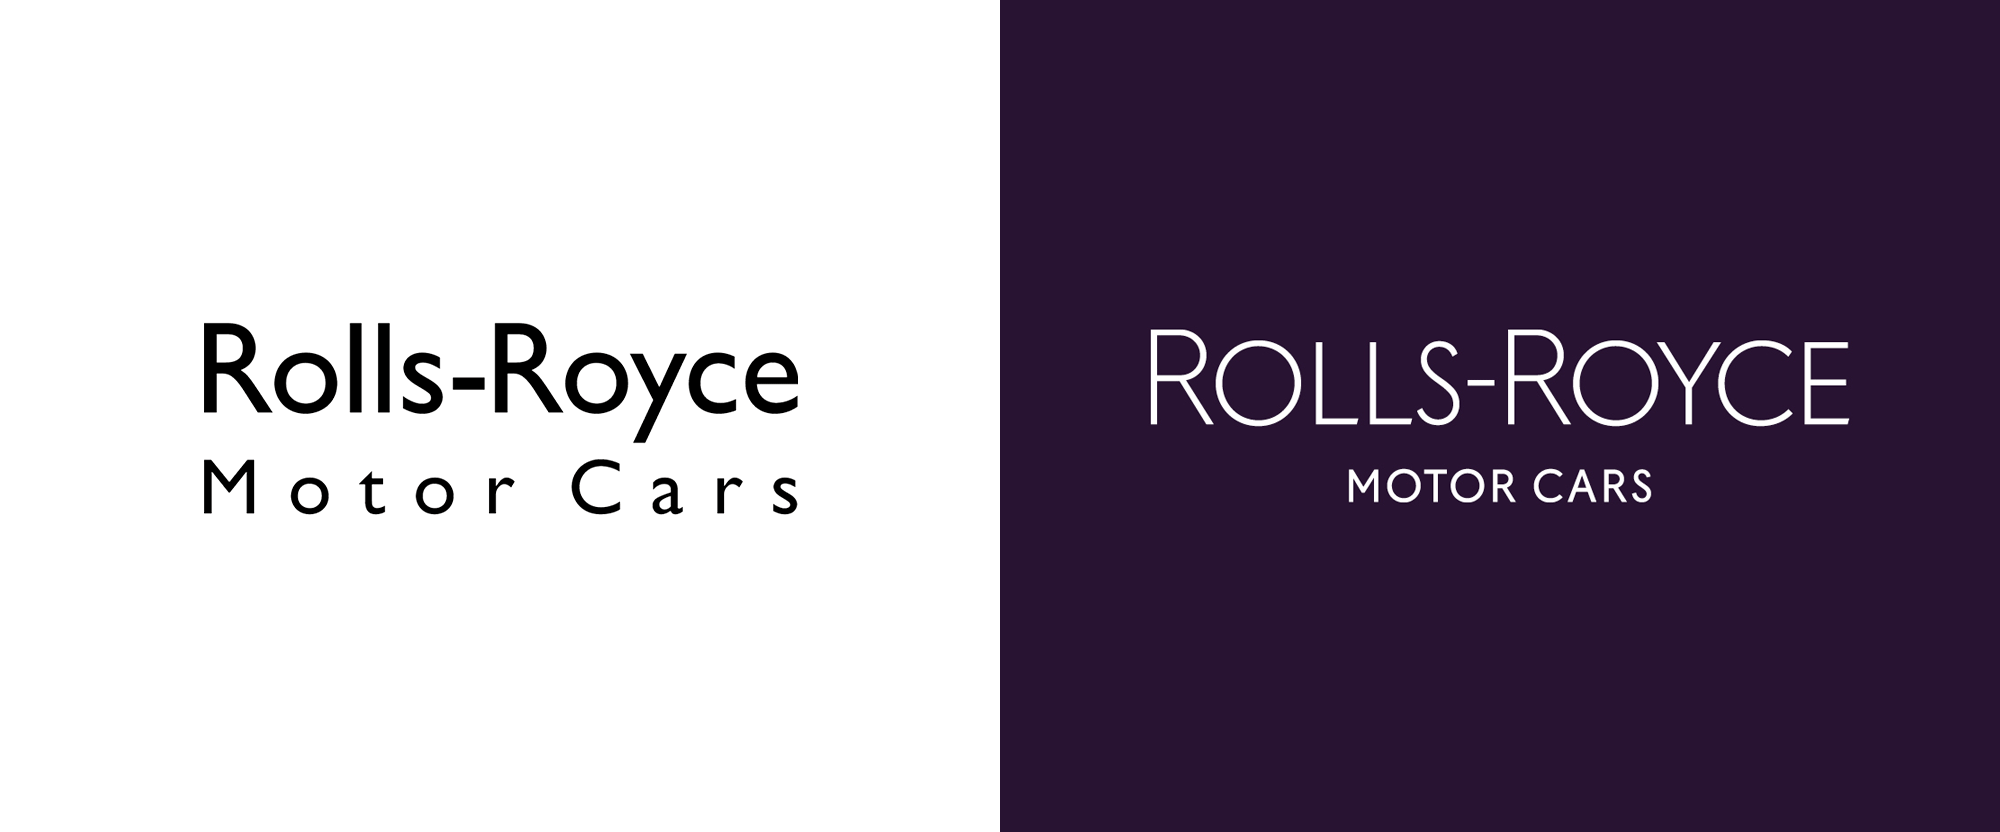 New Logo and Identity for Rolls-Royce by Pentagram